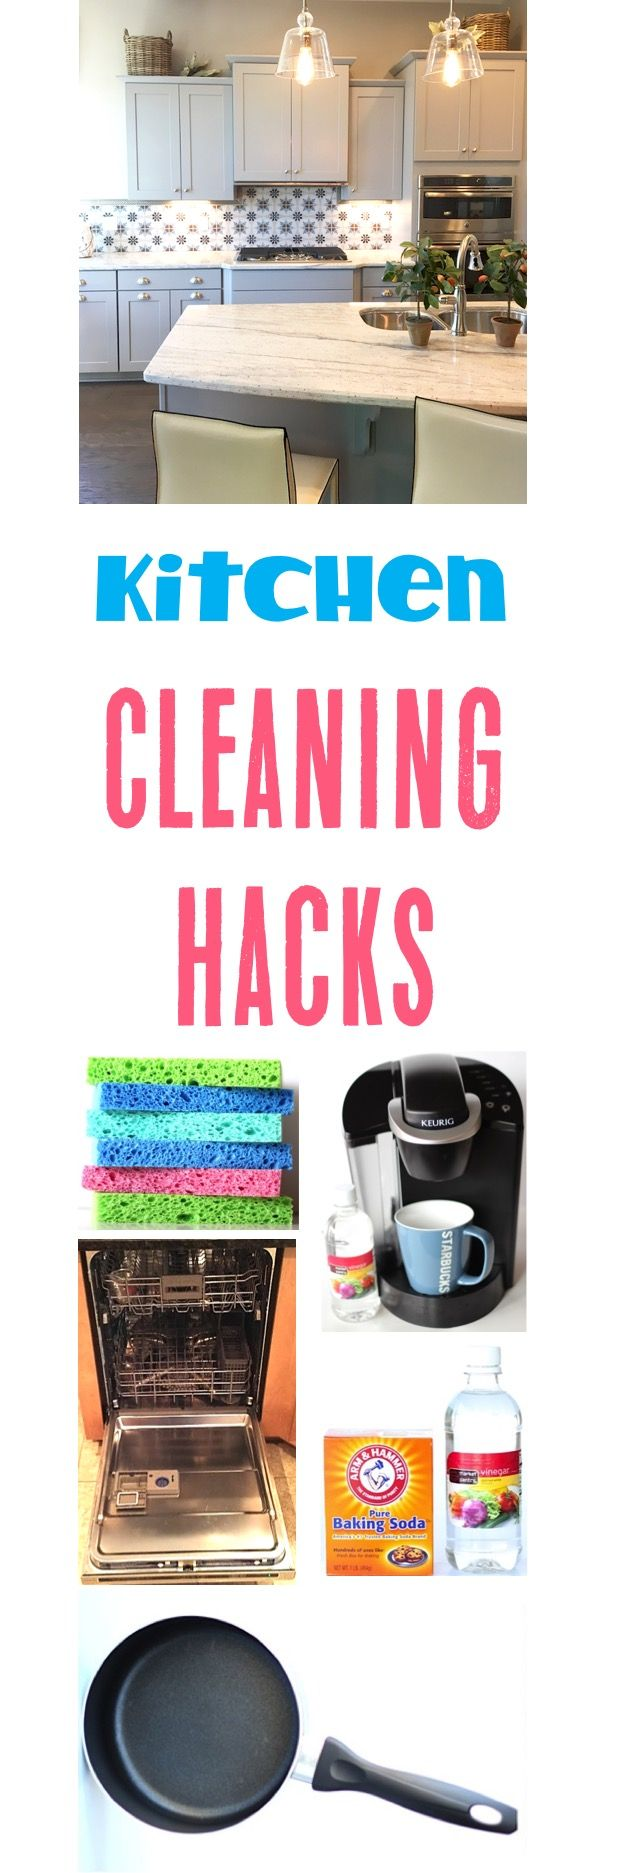 229 Best Images About Homemade Cleaners On Pinterest